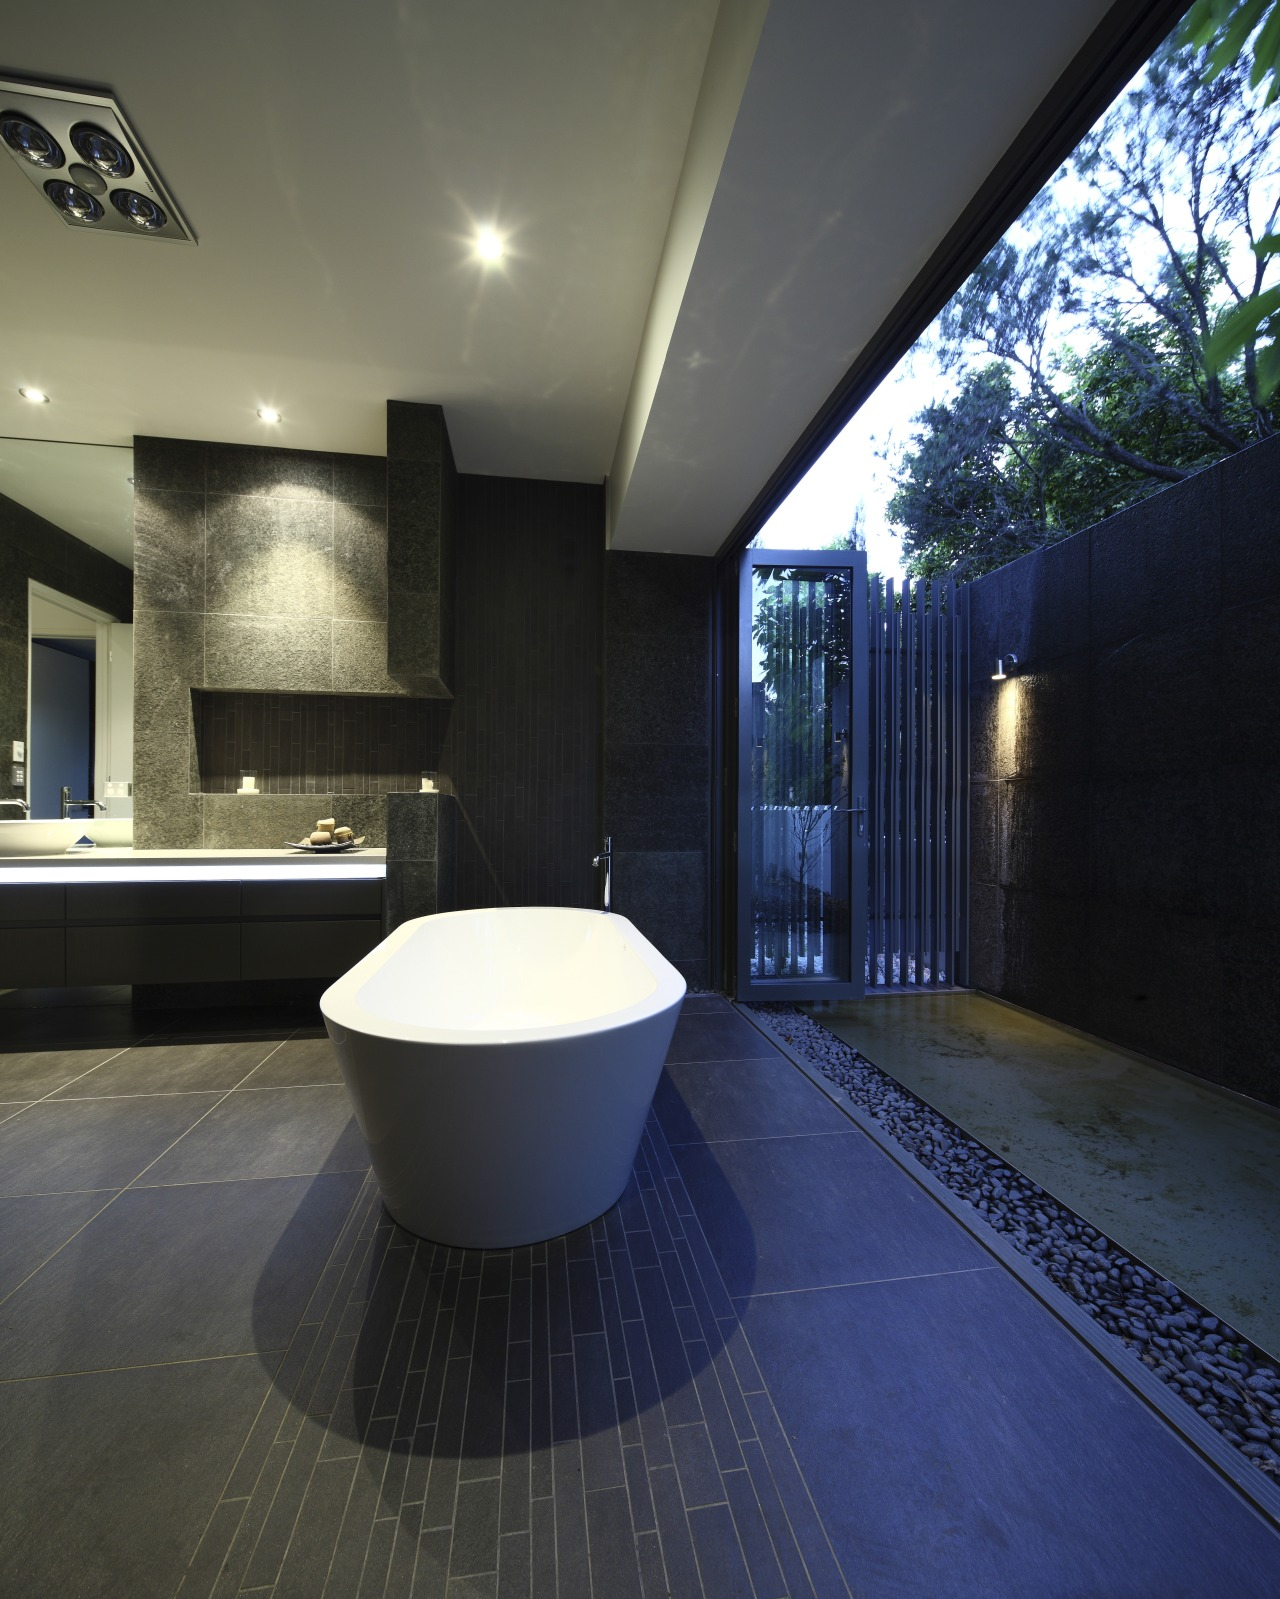 View of dark-toned bathroom with white tub. architecture, bathroom, ceiling, daylighting, estate, floor, flooring, home, house, interior design, lighting, property, real estate, tile, black, blue